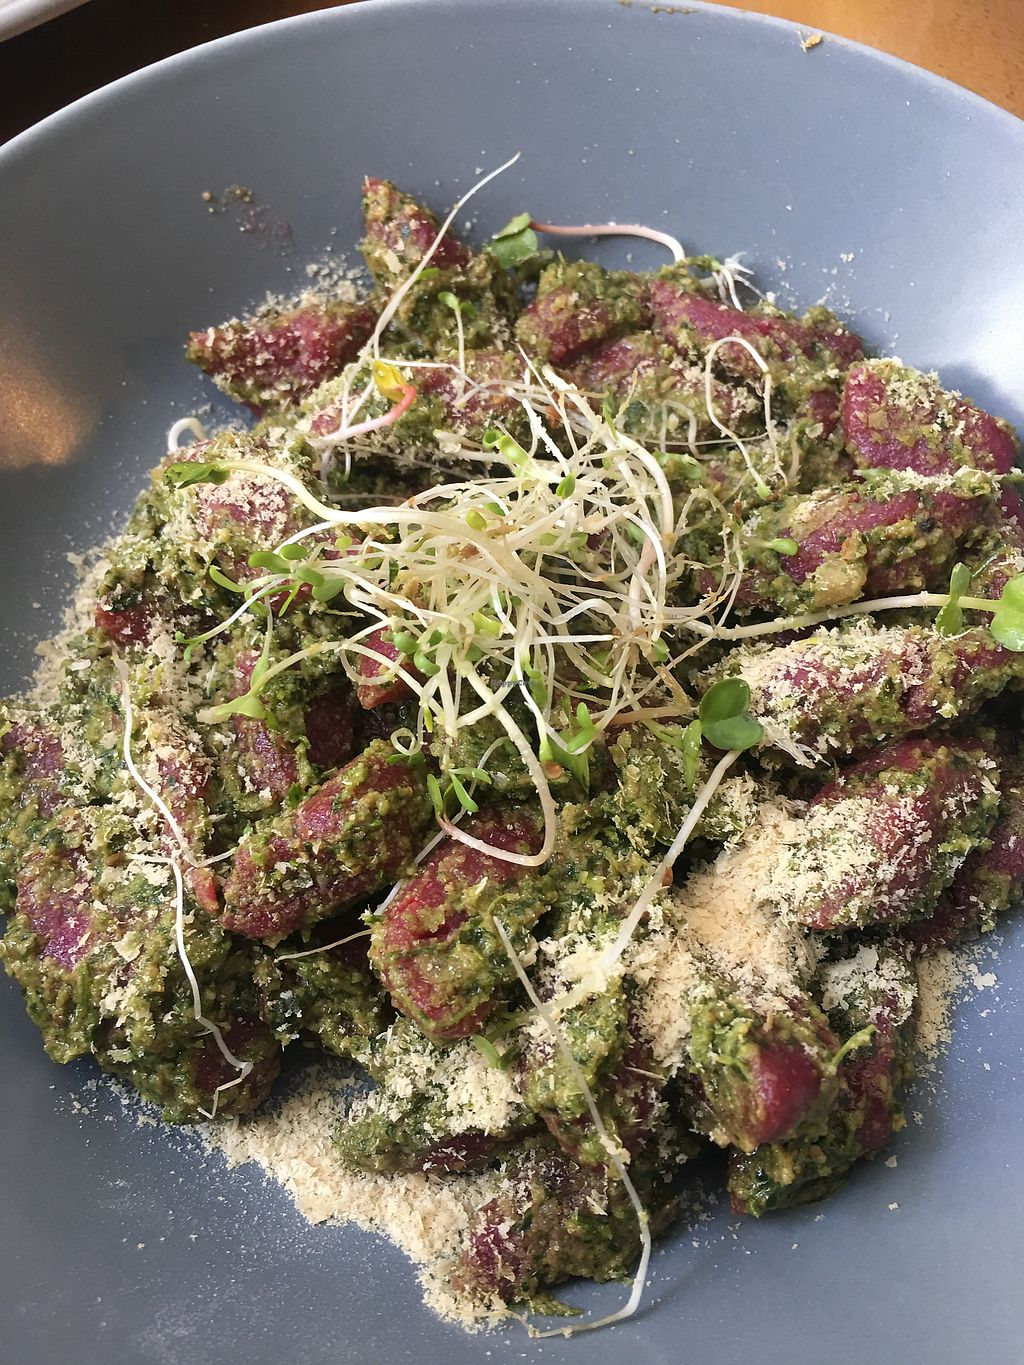 "Photo of CLOSED: Juicy Kuchnia Roslinna  by <a href=""/members/profile/Rucri"">Rucri</a> <br/>Beetroot Gnocchi with pesto  <br/> July 15, 2017  - <a href='/contact/abuse/image/94637/280608'>Report</a>"